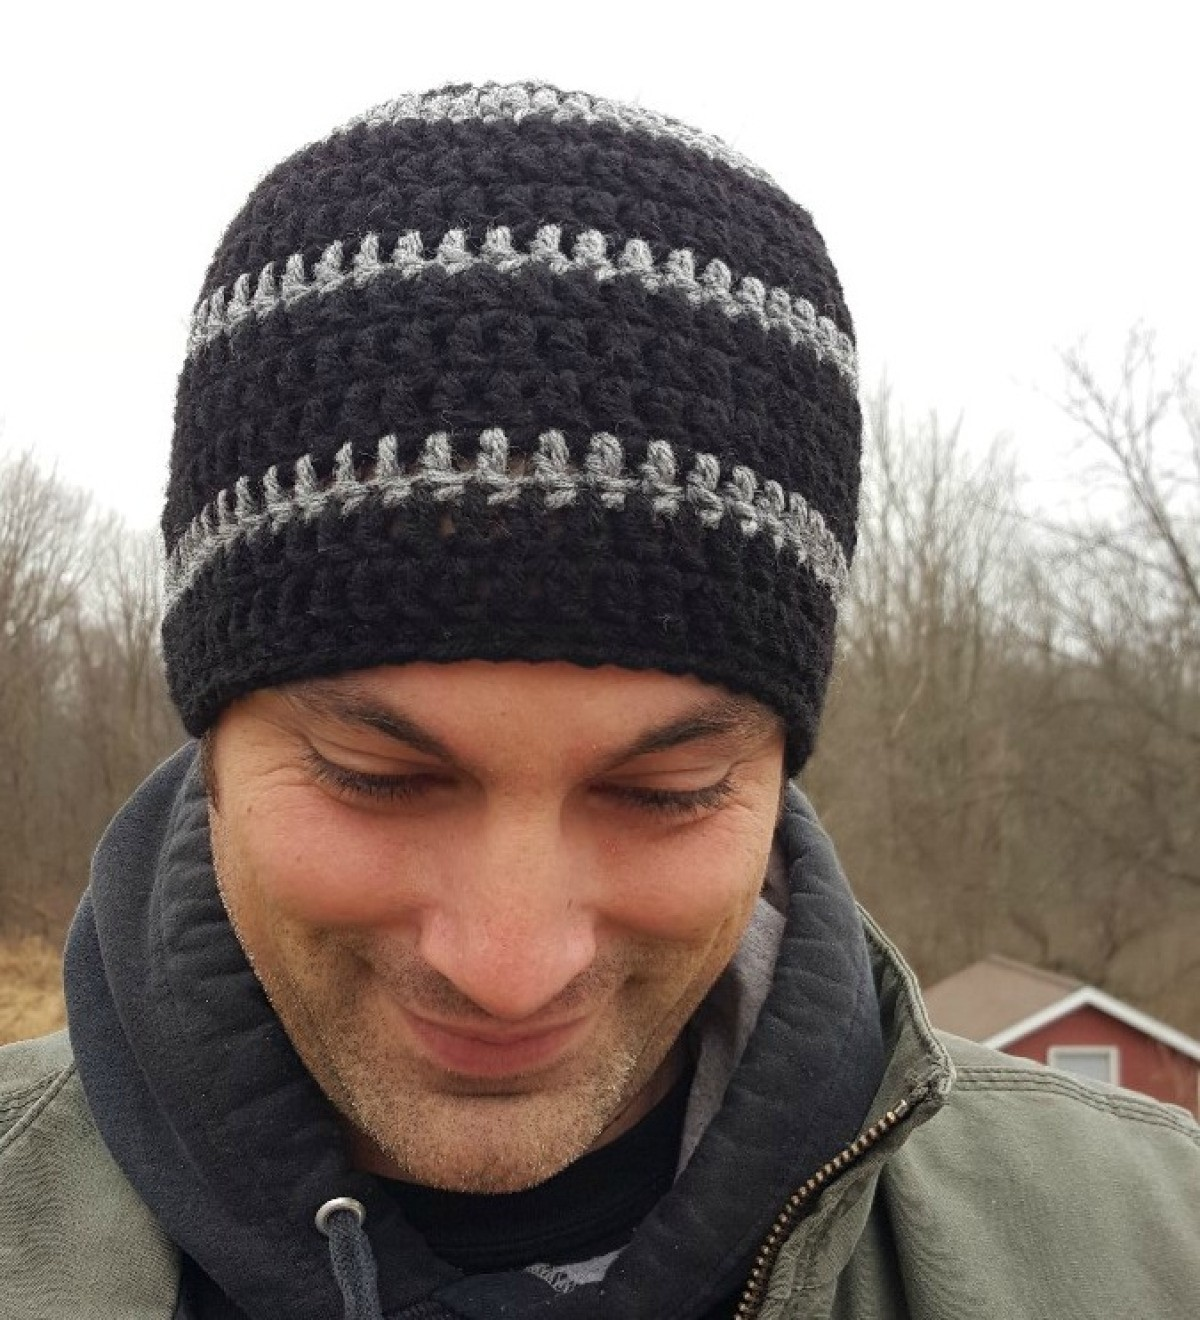 How To Make A Mens Crocheted Skull Cap Thriftyfun